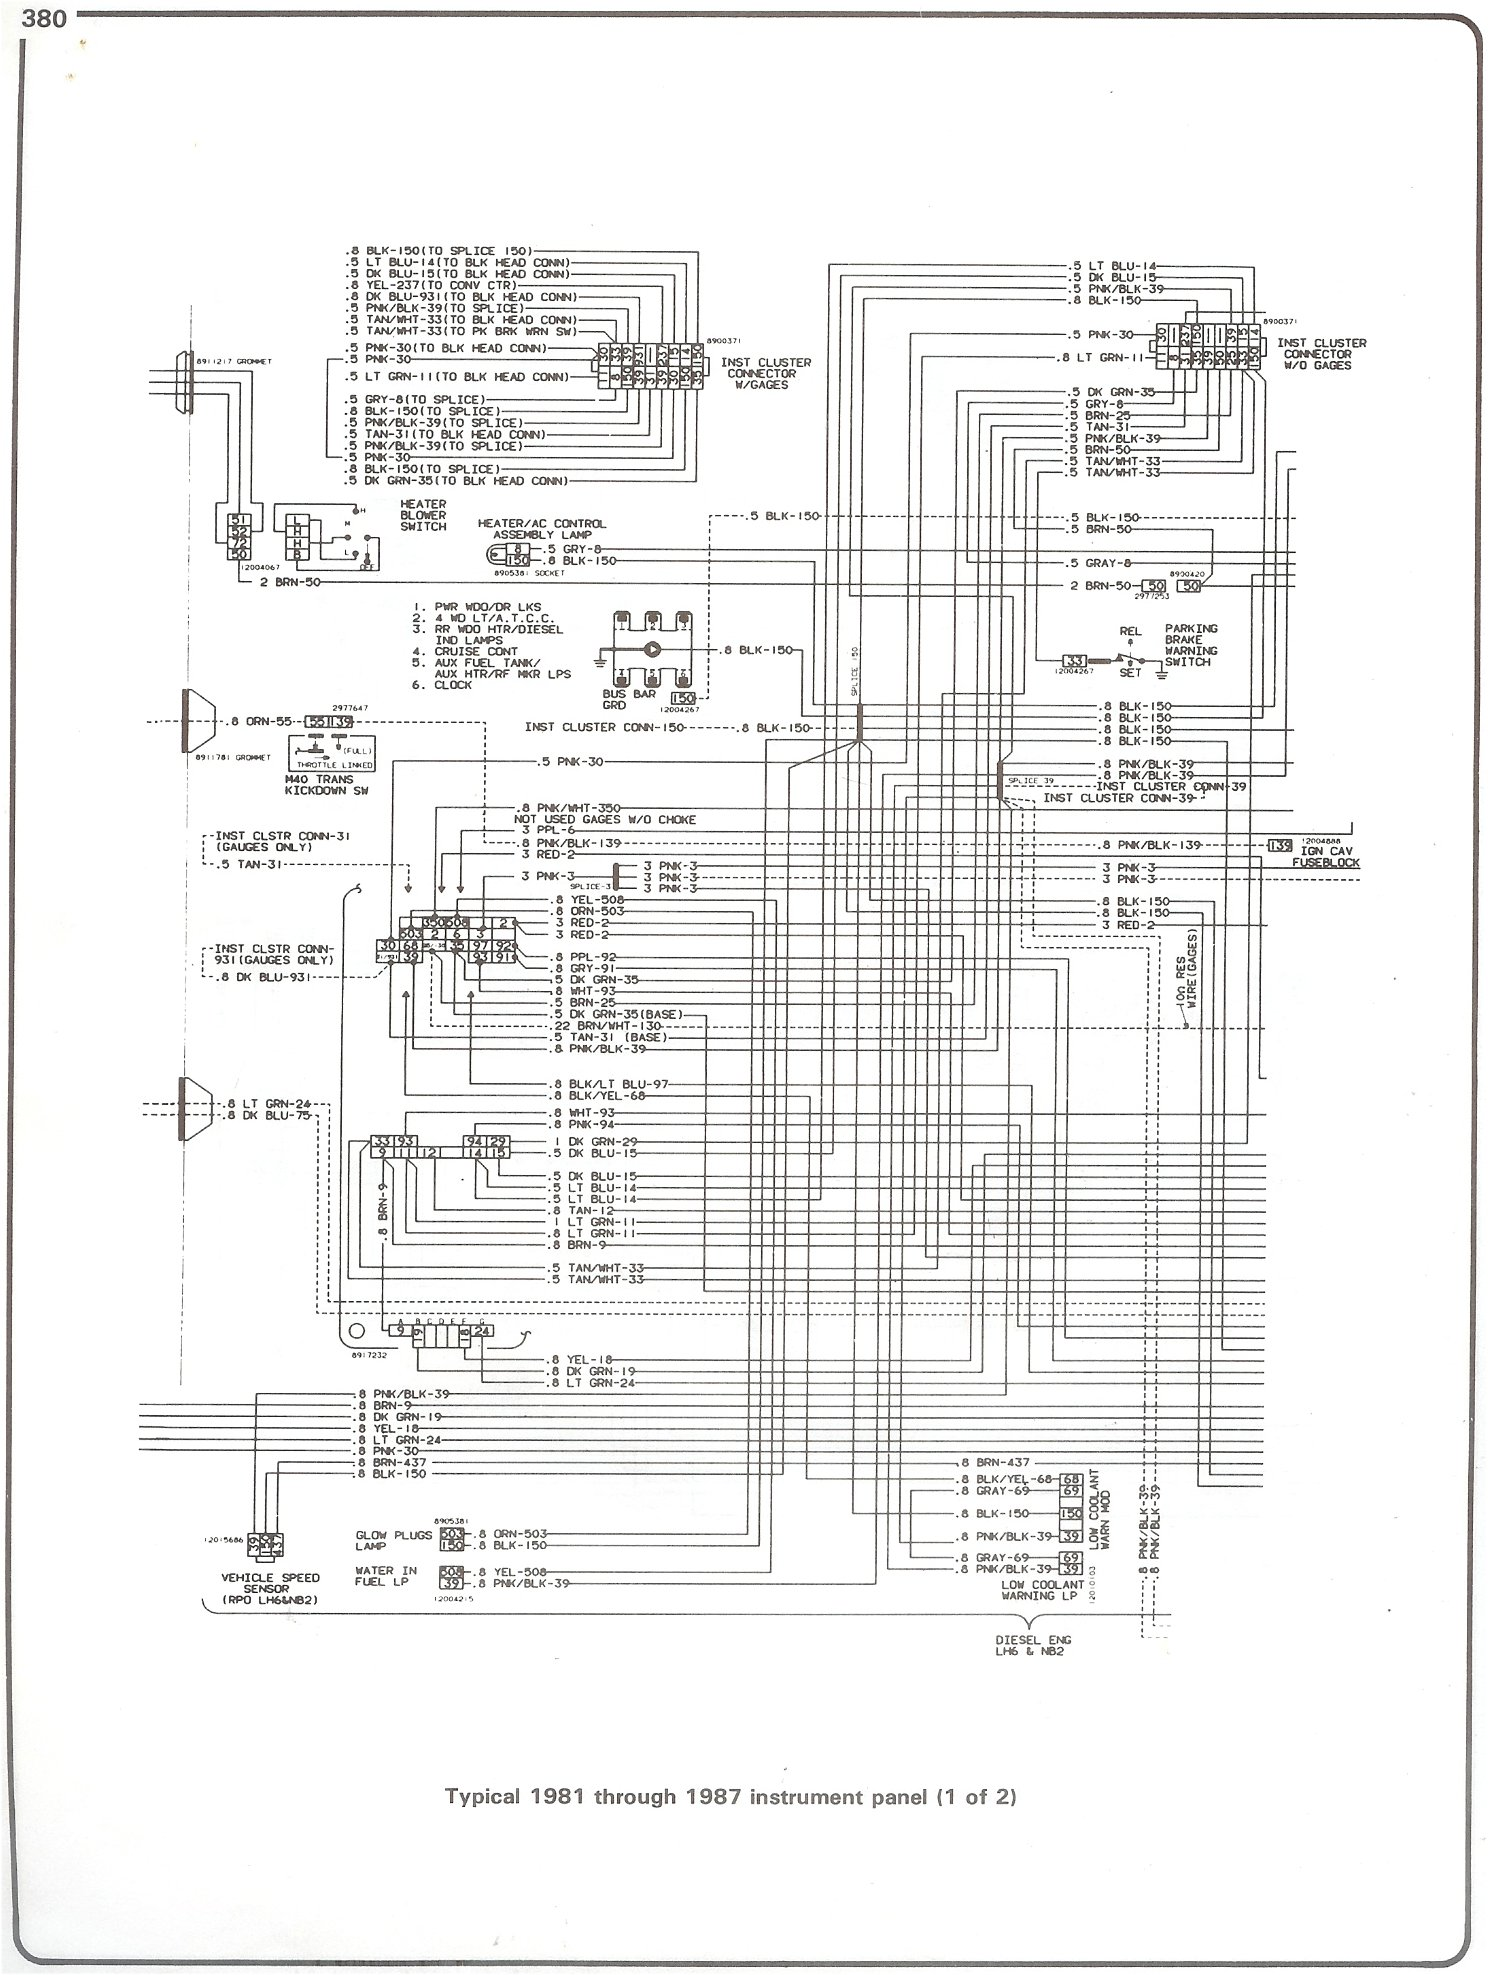 1983 Chevy Truck Wiring Diagram from www.73-87chevytrucks.com